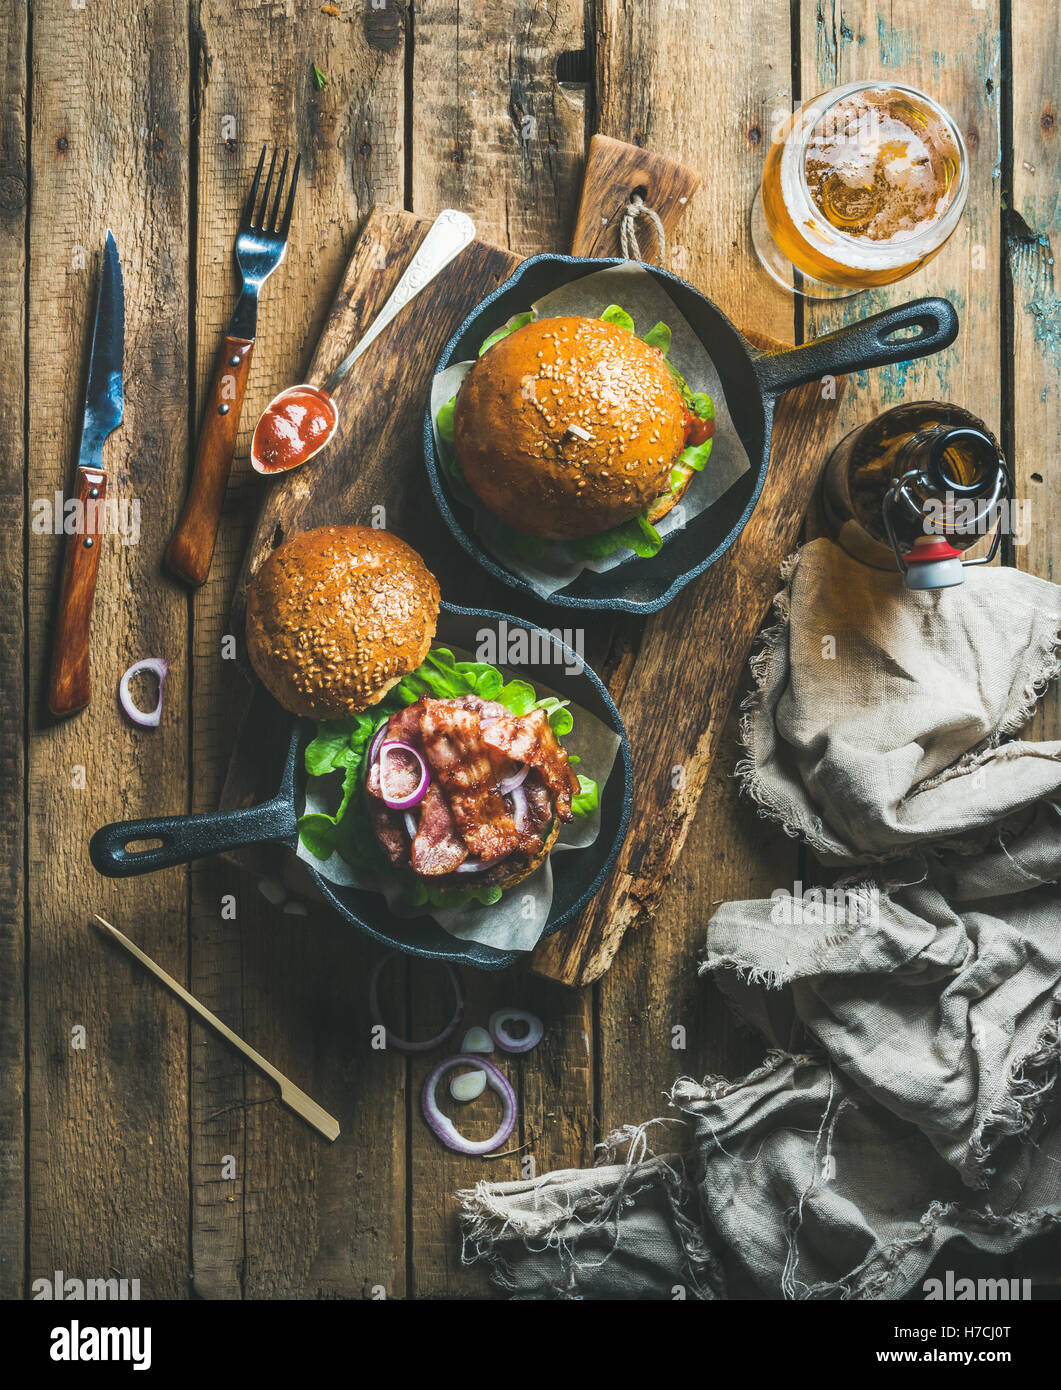 Beef burgers in cast iron pans and glass of beer - Stock Image